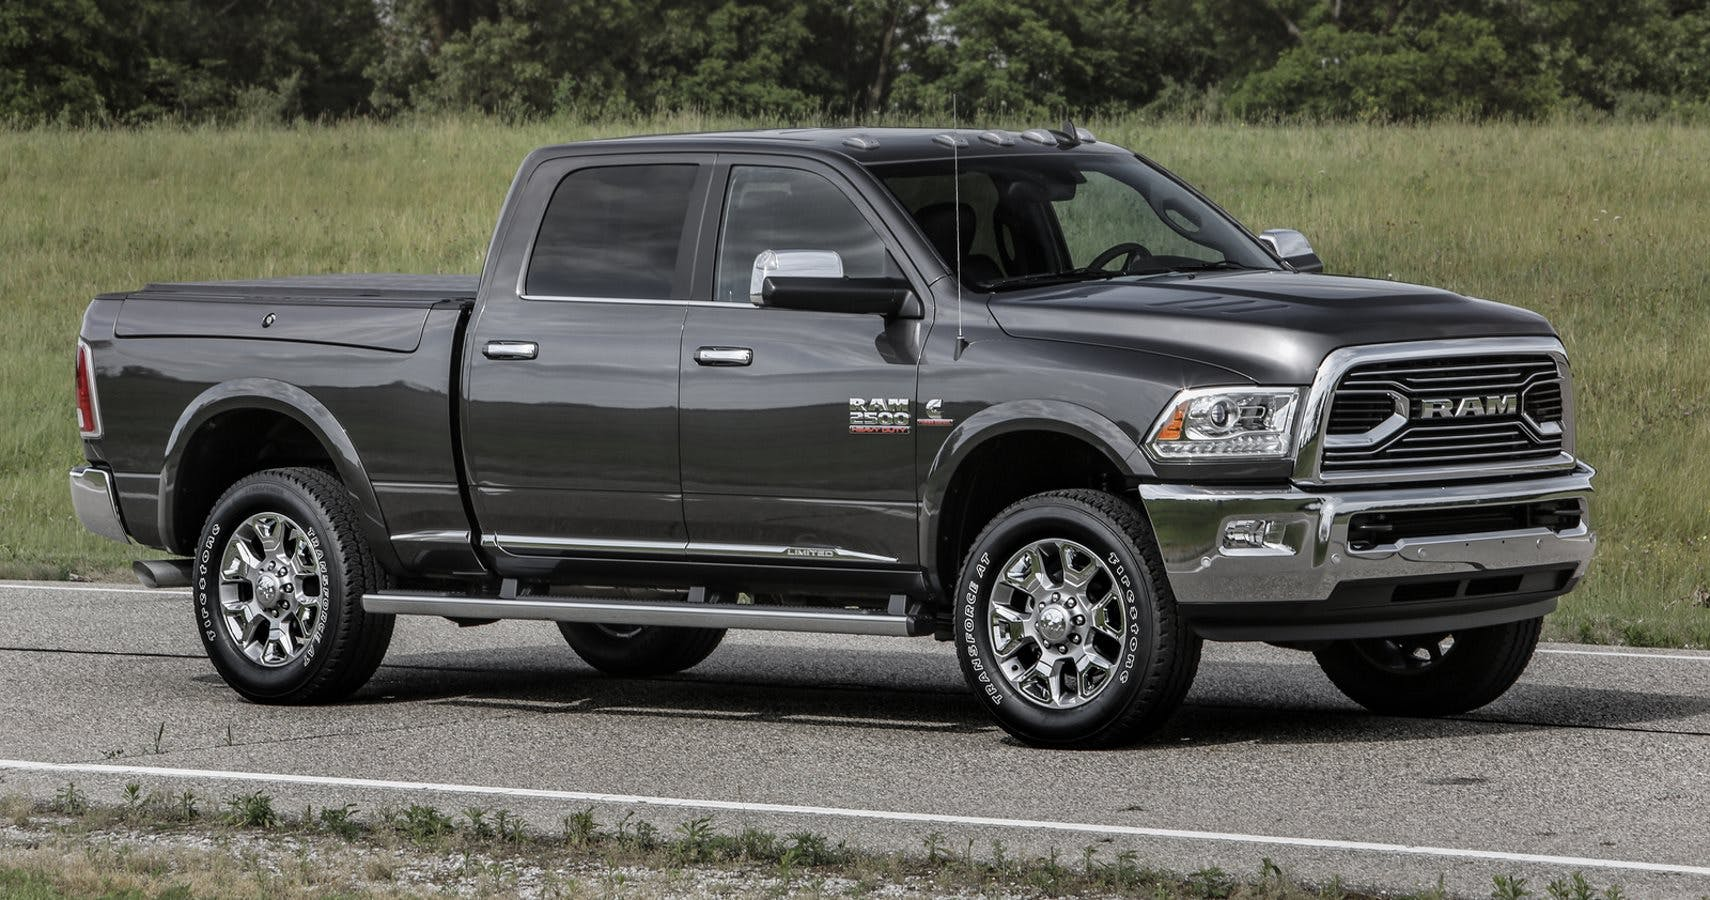 45 All New 2020 Dodge Ram 2500 Speed Test